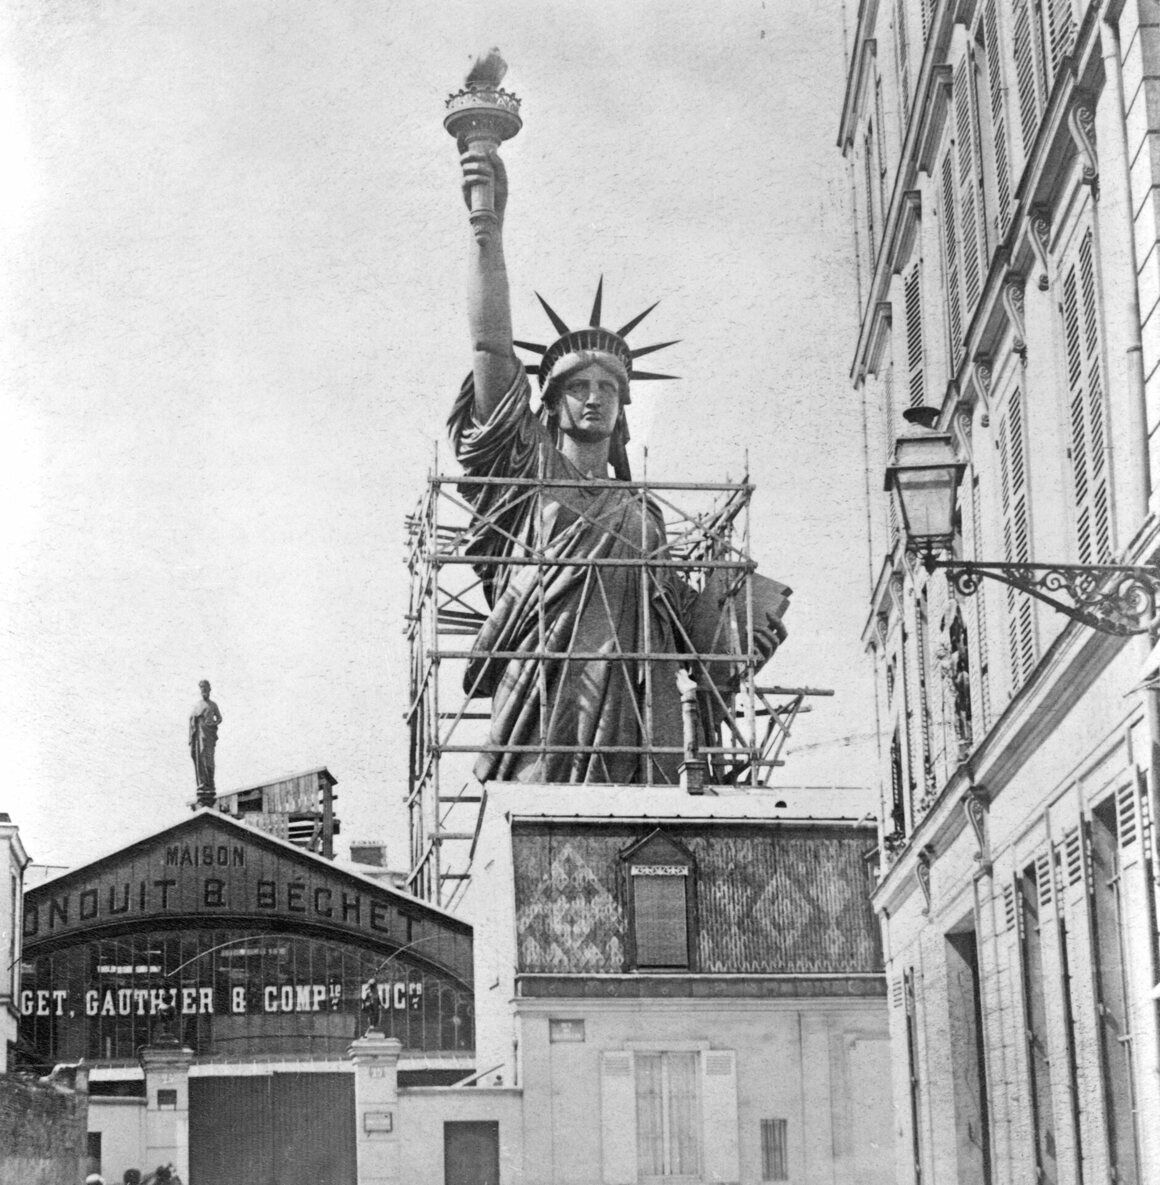 The Statue of Liberty towering over rooftops in Paris.